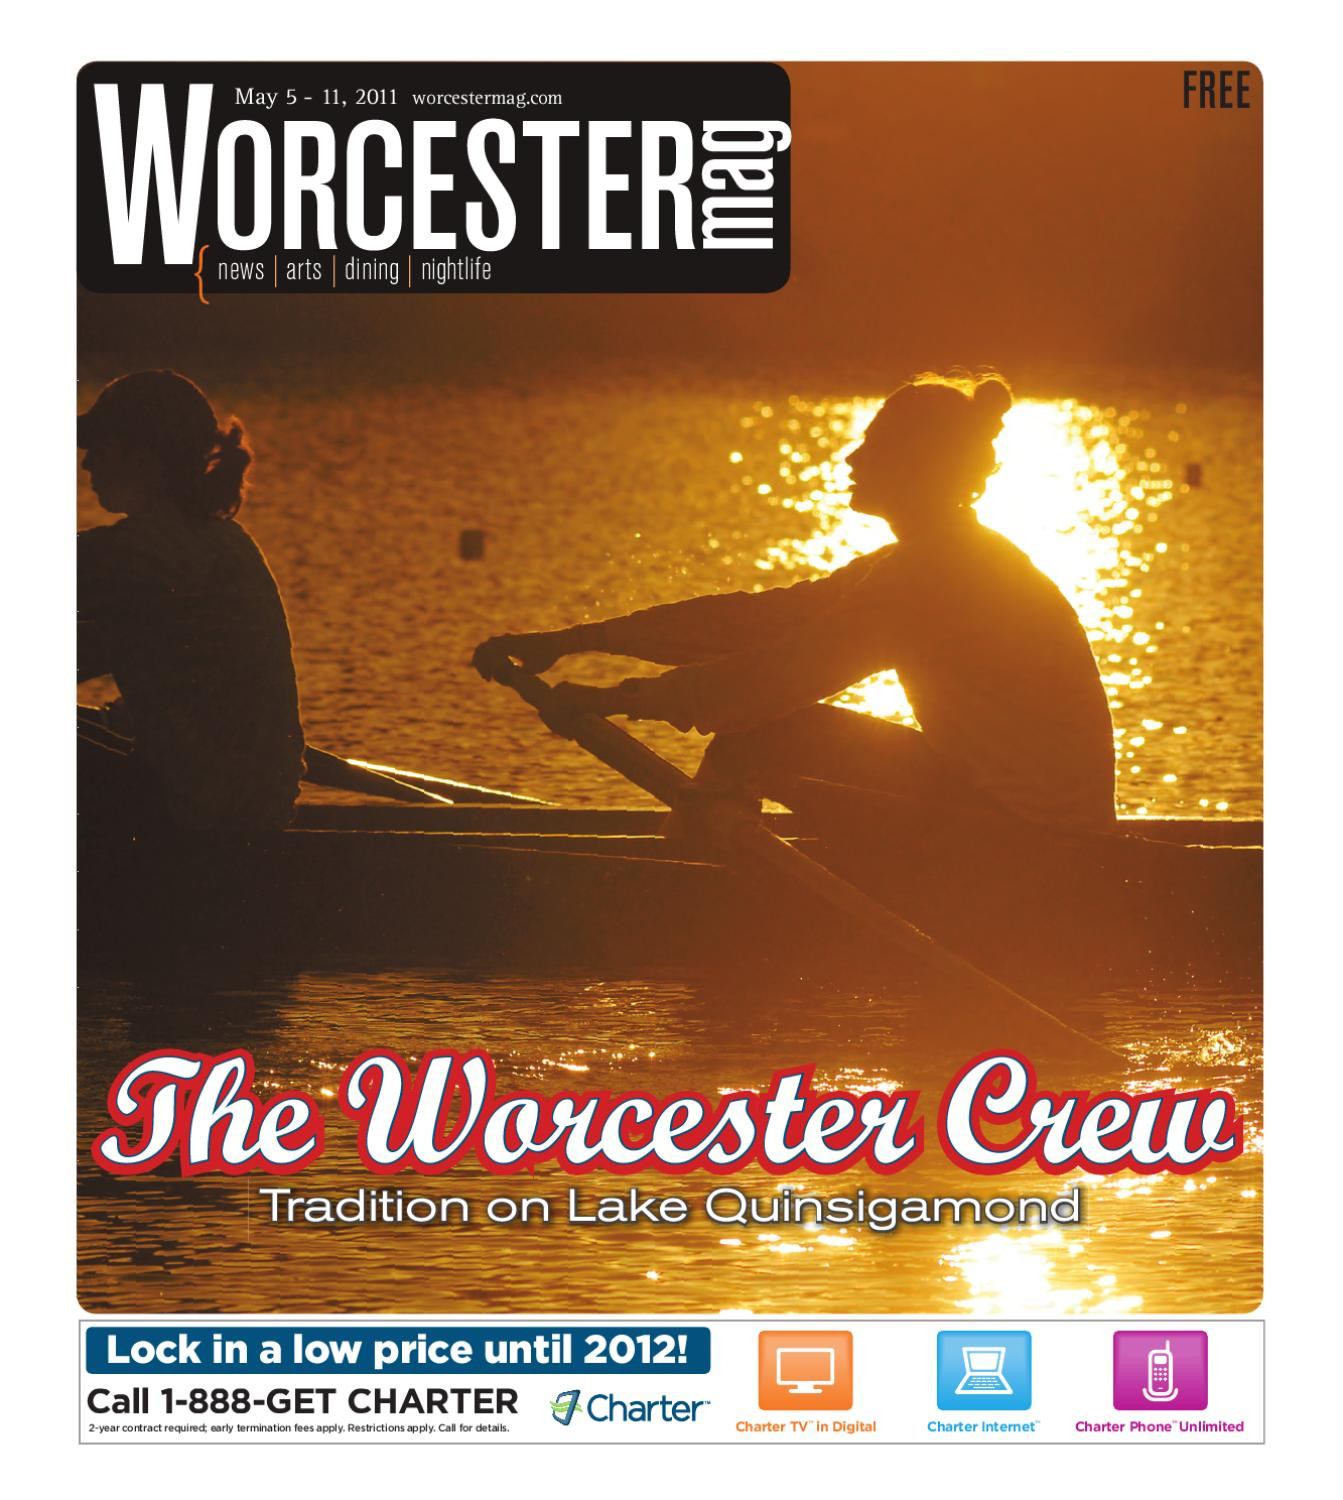 Vase Market Coupon Code Of Worcester Mag May 5 2011 by Worcester Magazine issuu Throughout Page 1